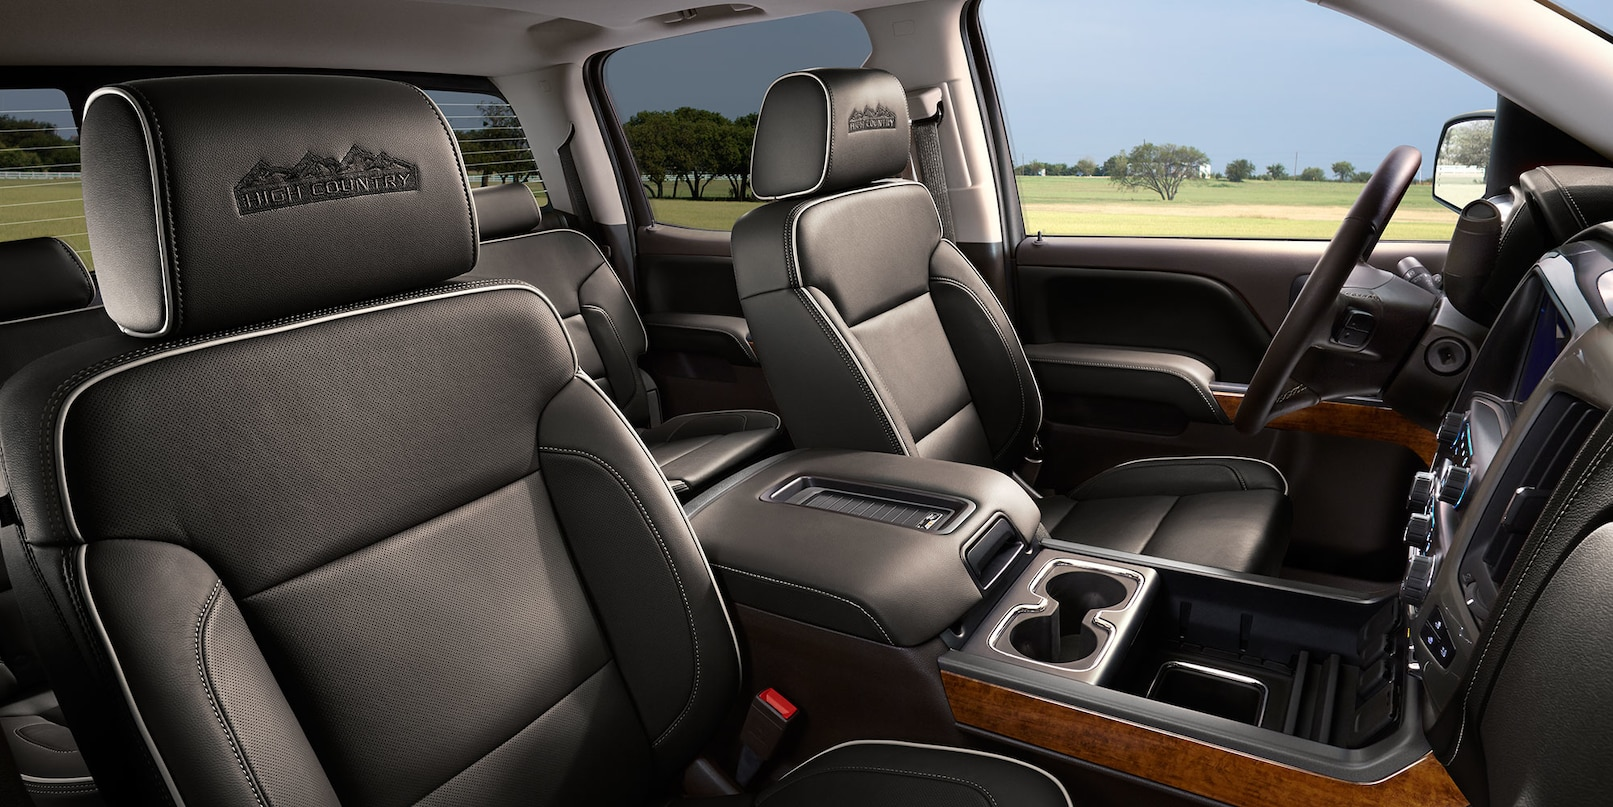 Get Comfortable in the Silverado 1500